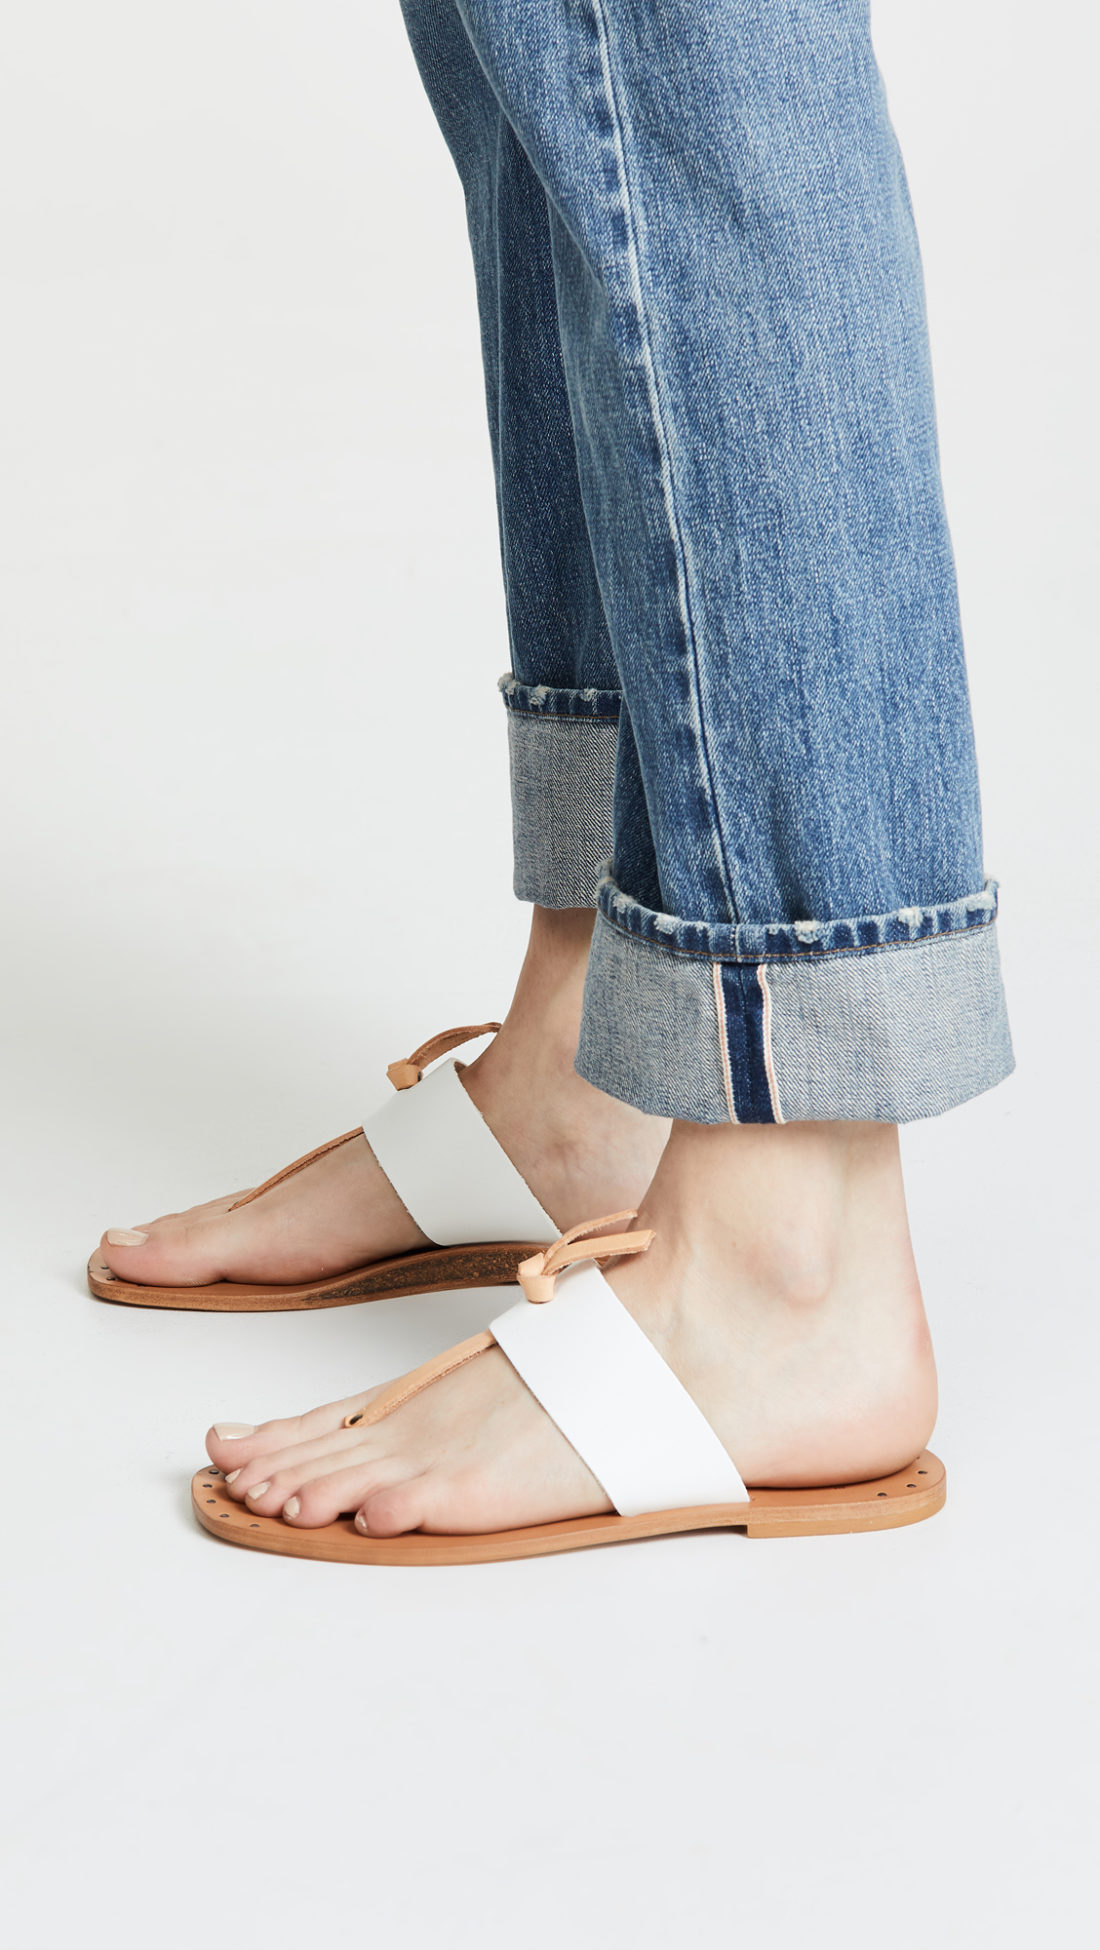 Joie Baeli Sandals - Shopbop sale recommendations by popular North Carolina fashion blogger Glitter, Inc.